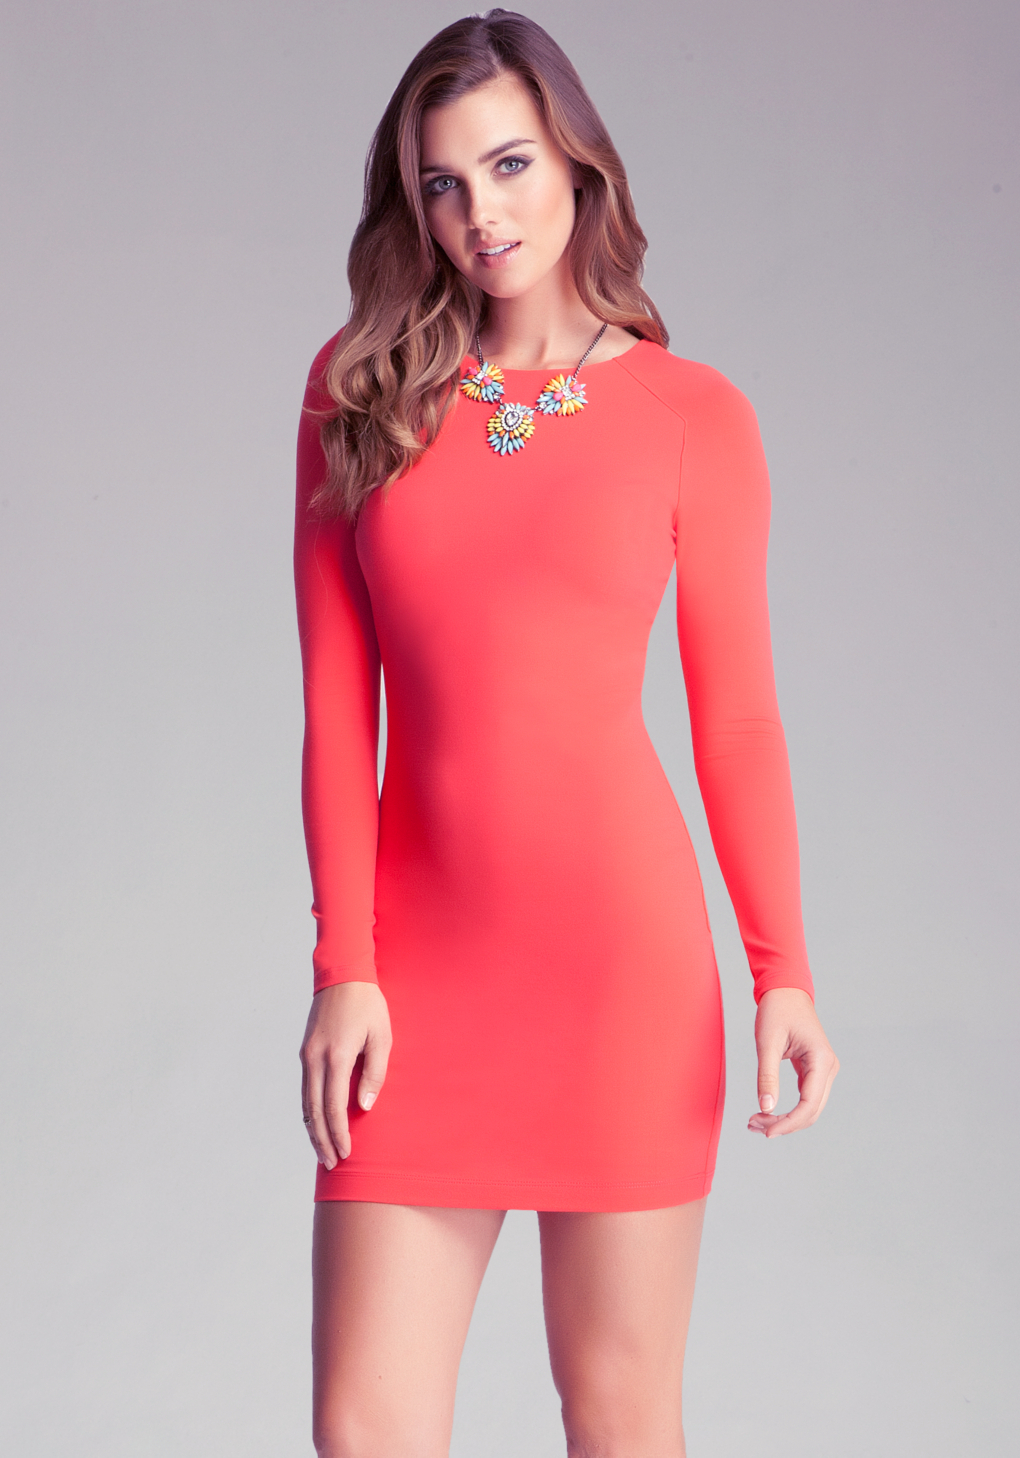 Bebe Long Sleeve Bodycon Dress in Red (hibiscus)